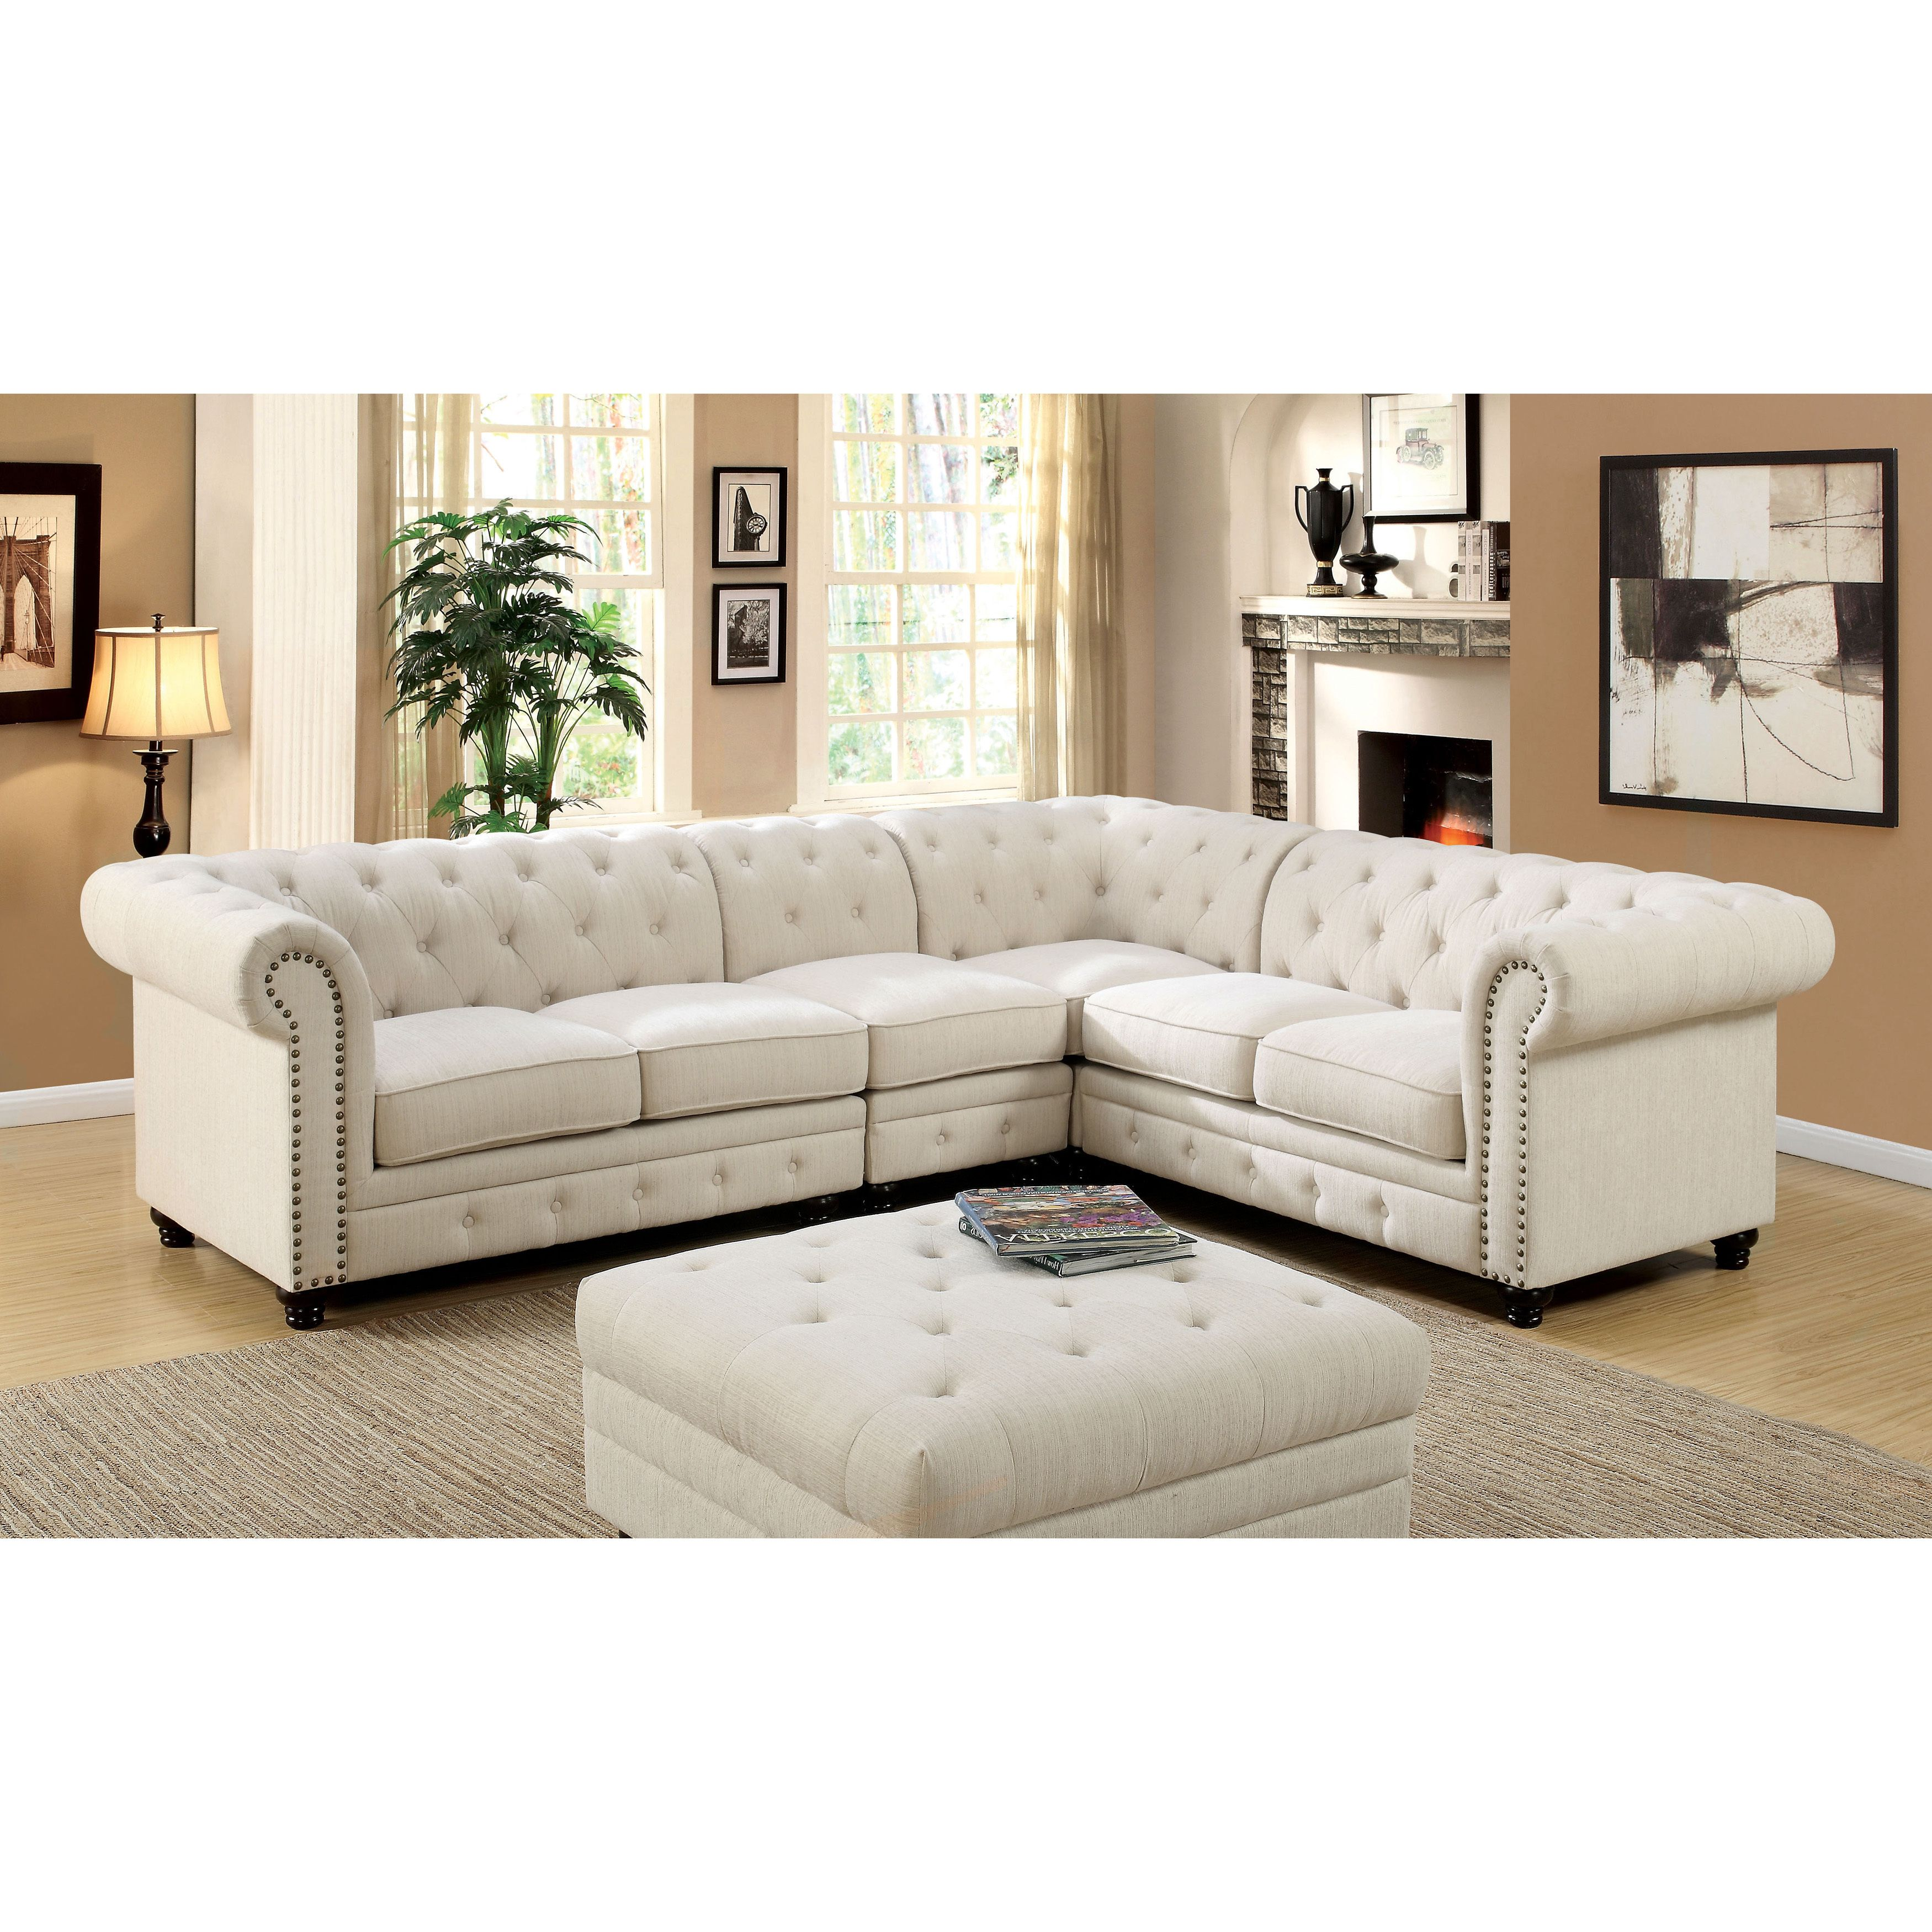 tufted linen sectional sofa best mattress sleeper furniture of america sylvana traditional like